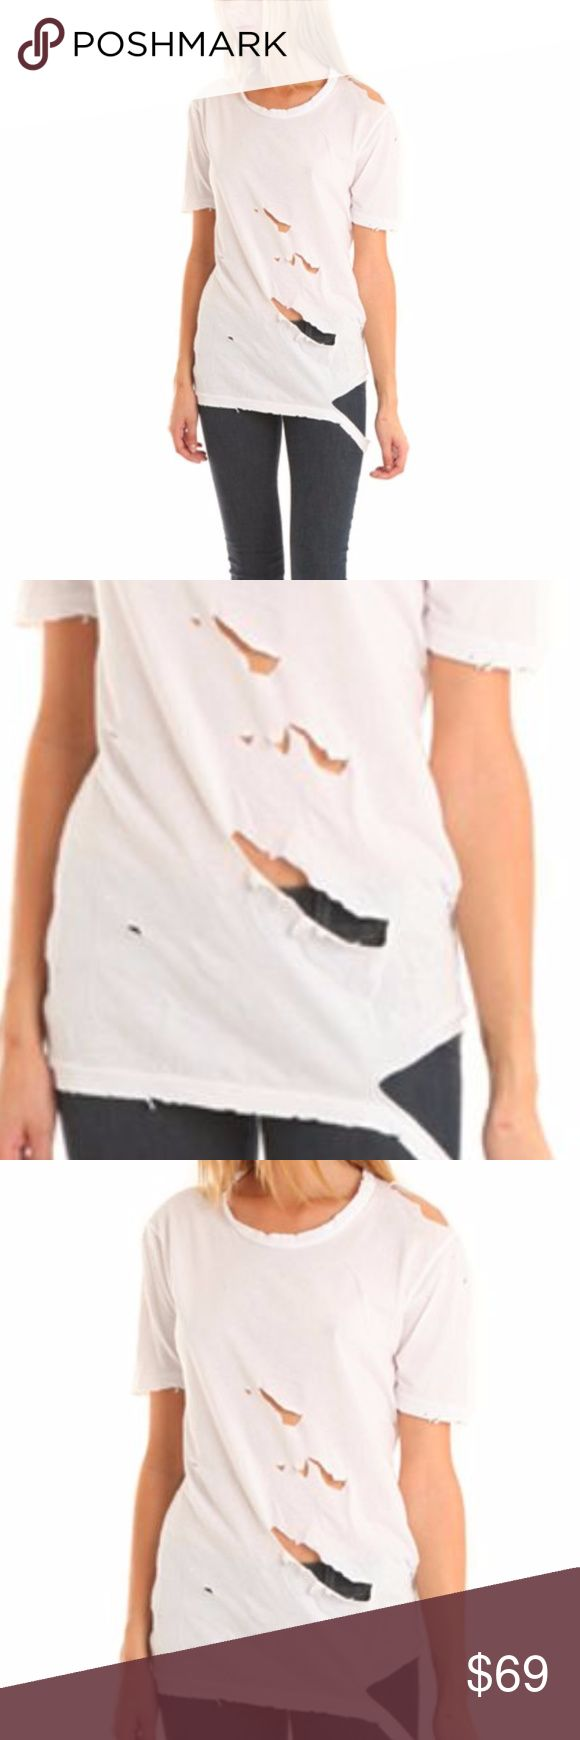 Nightcap Clothing Kylie Jenner Ripped Tee in White Nightcap Clothing Kylie Jenner Ripped Tee in White  Nightcap Clothing Ripped Boyfriend Tee in White The Nightcap Ripped Boyfriend Tee in White is distressed to please. Made from soft cotton jersey, the crew tee features a draped fit. Holes and distressing throughout and ripped hem give the traveler-inspired tee its finishing touch.      Color: White     Fabric: 100% Supima Cotton     Ripped Hem / Distres Nightcap Tops Tees - Short Sleeve